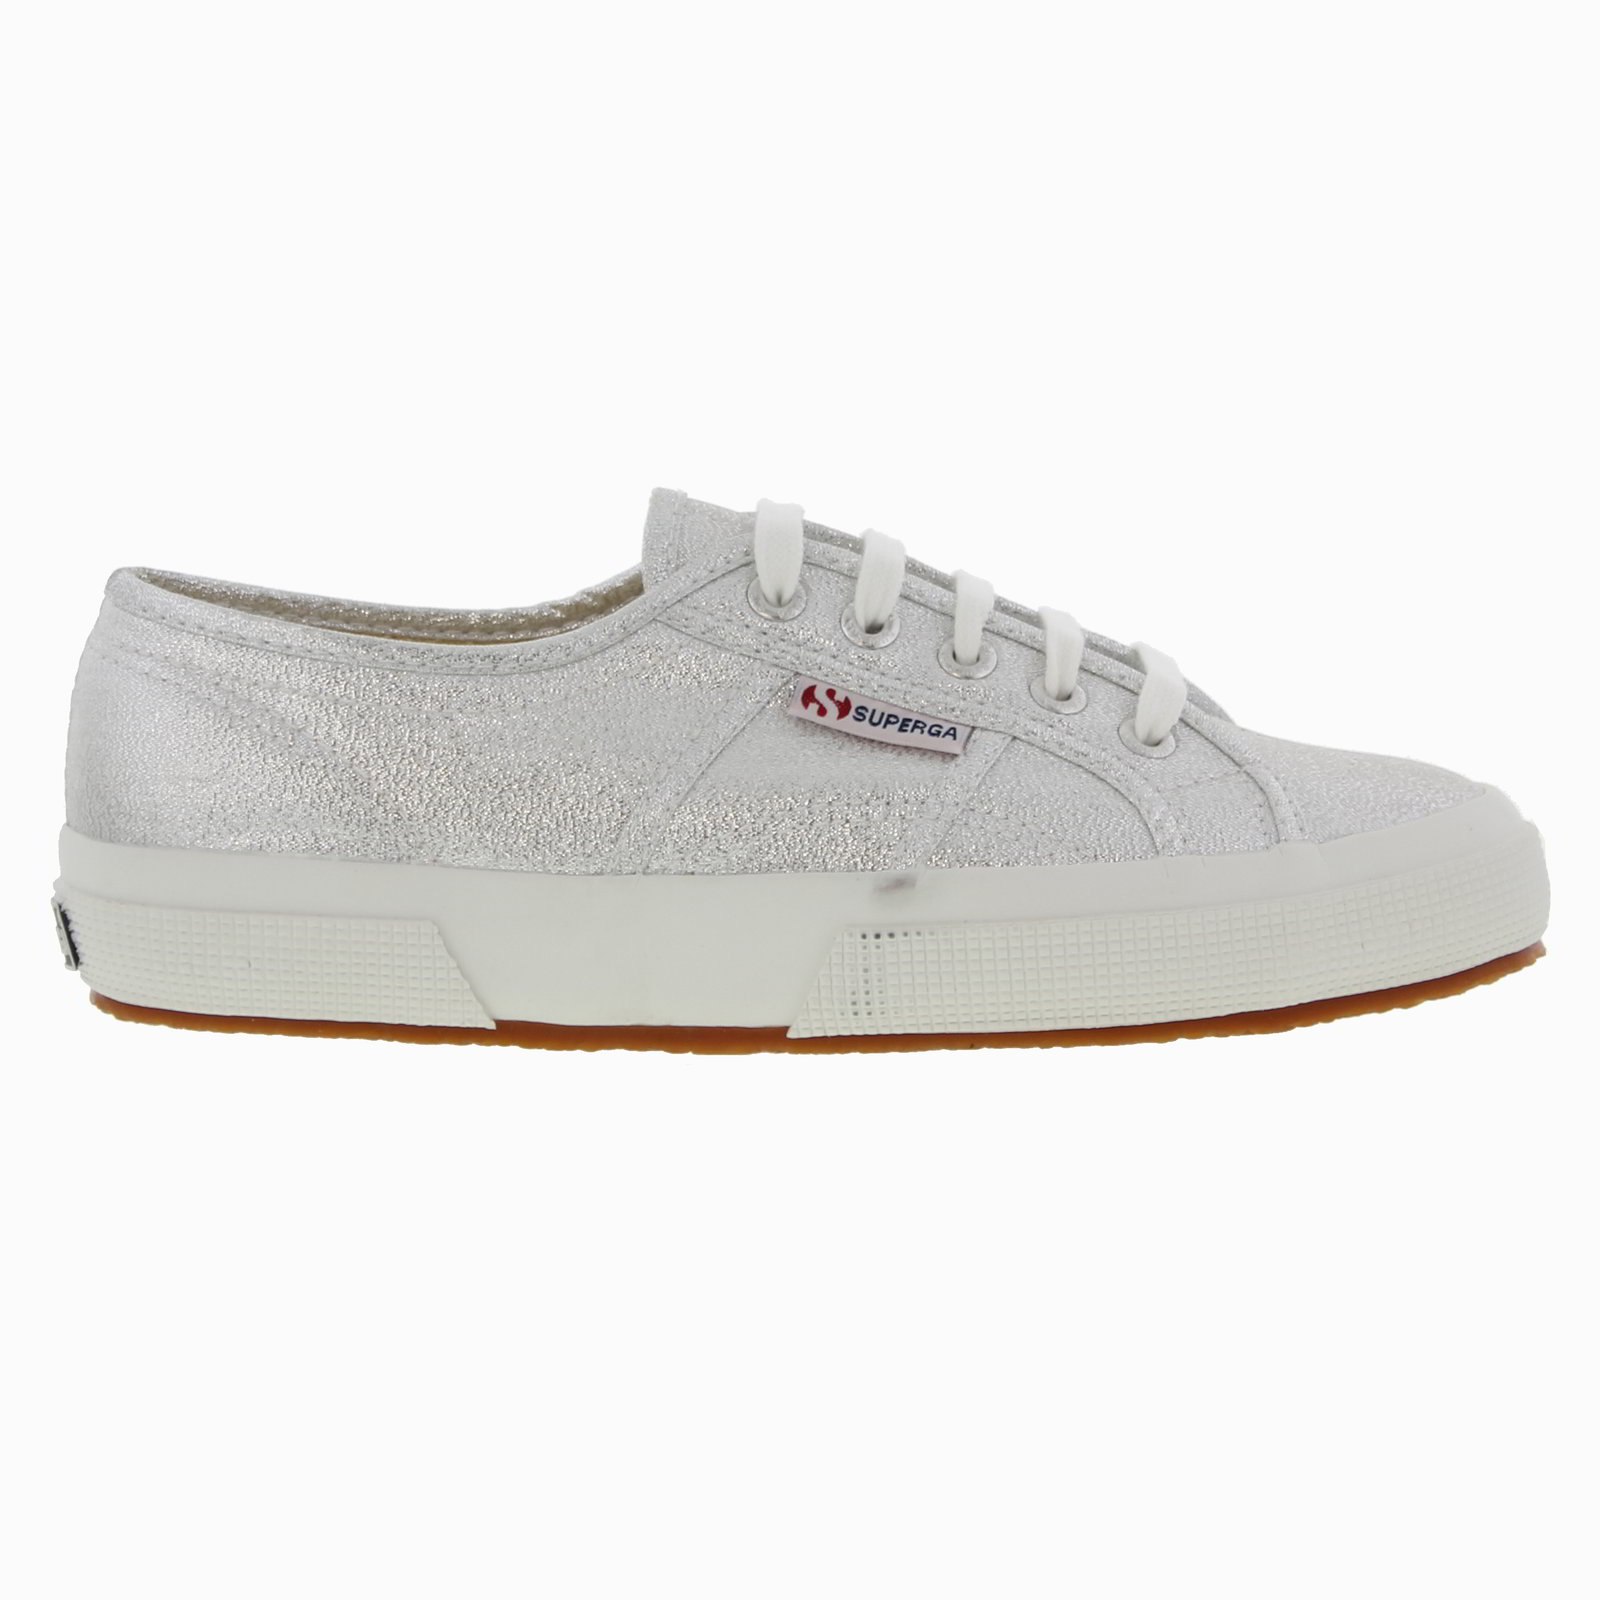 superga 2750 lamew womens silver canvas lace up trainers shoes size uk 4 8. Black Bedroom Furniture Sets. Home Design Ideas